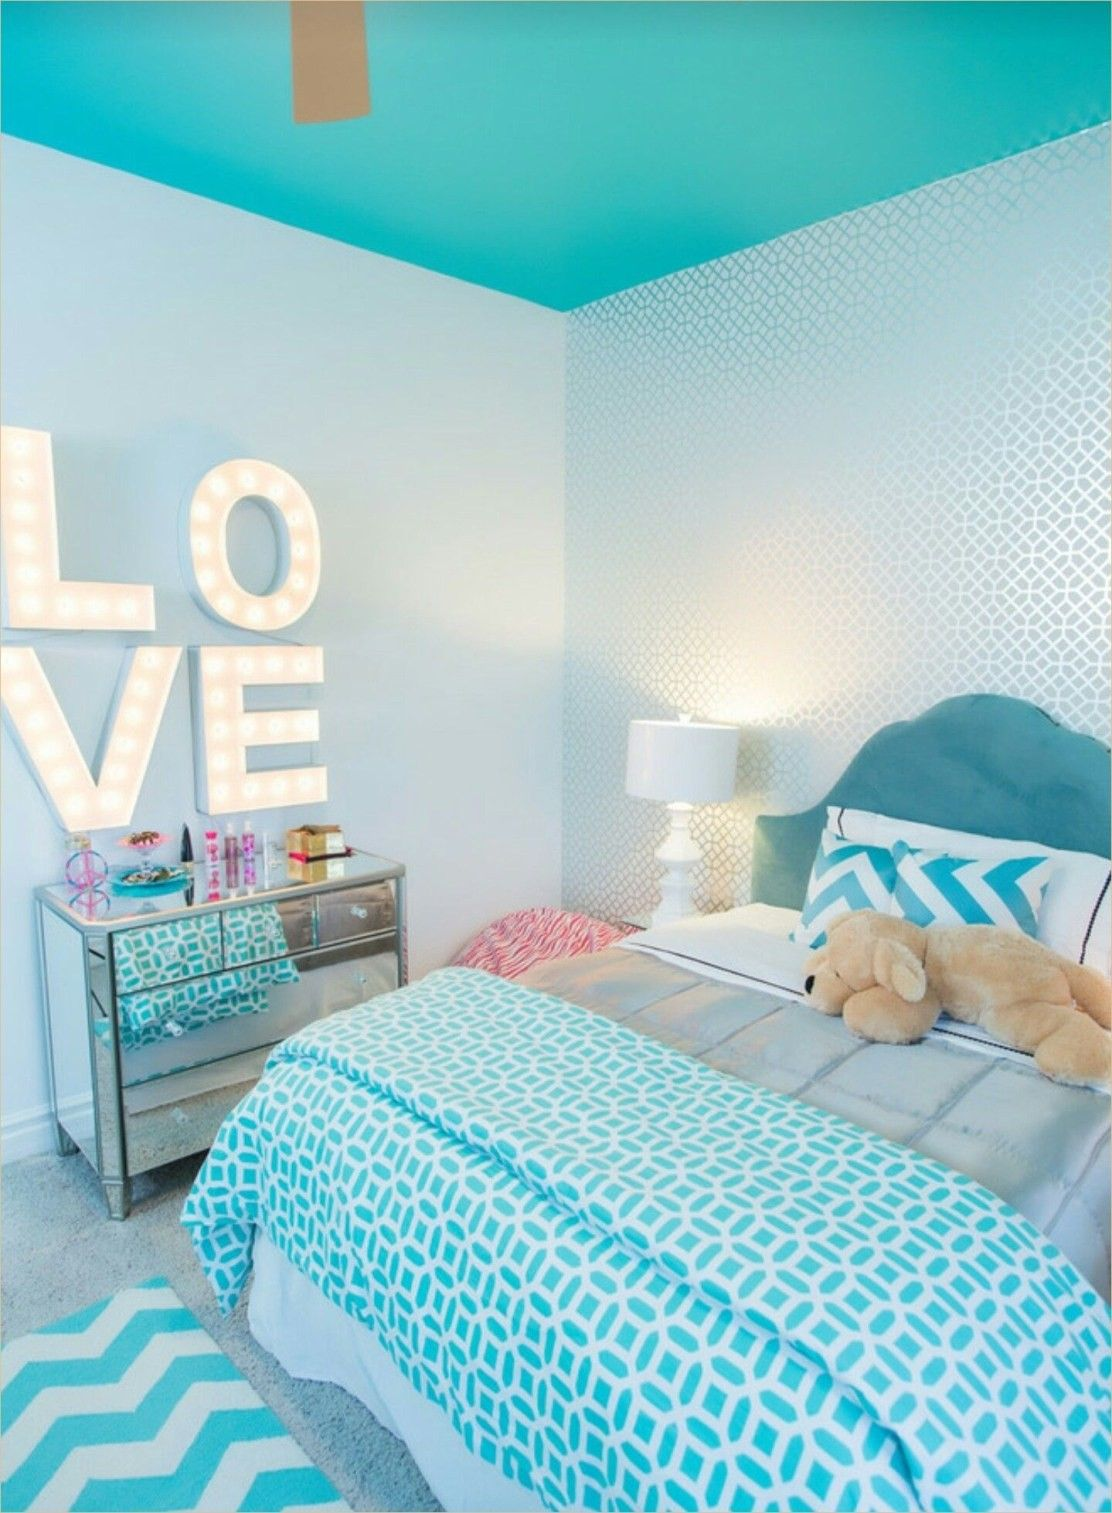 20+ Classy Turquoise Aesthetic Room Decor Ideas You Must ... on Classy Teenage Room Decor  id=41479